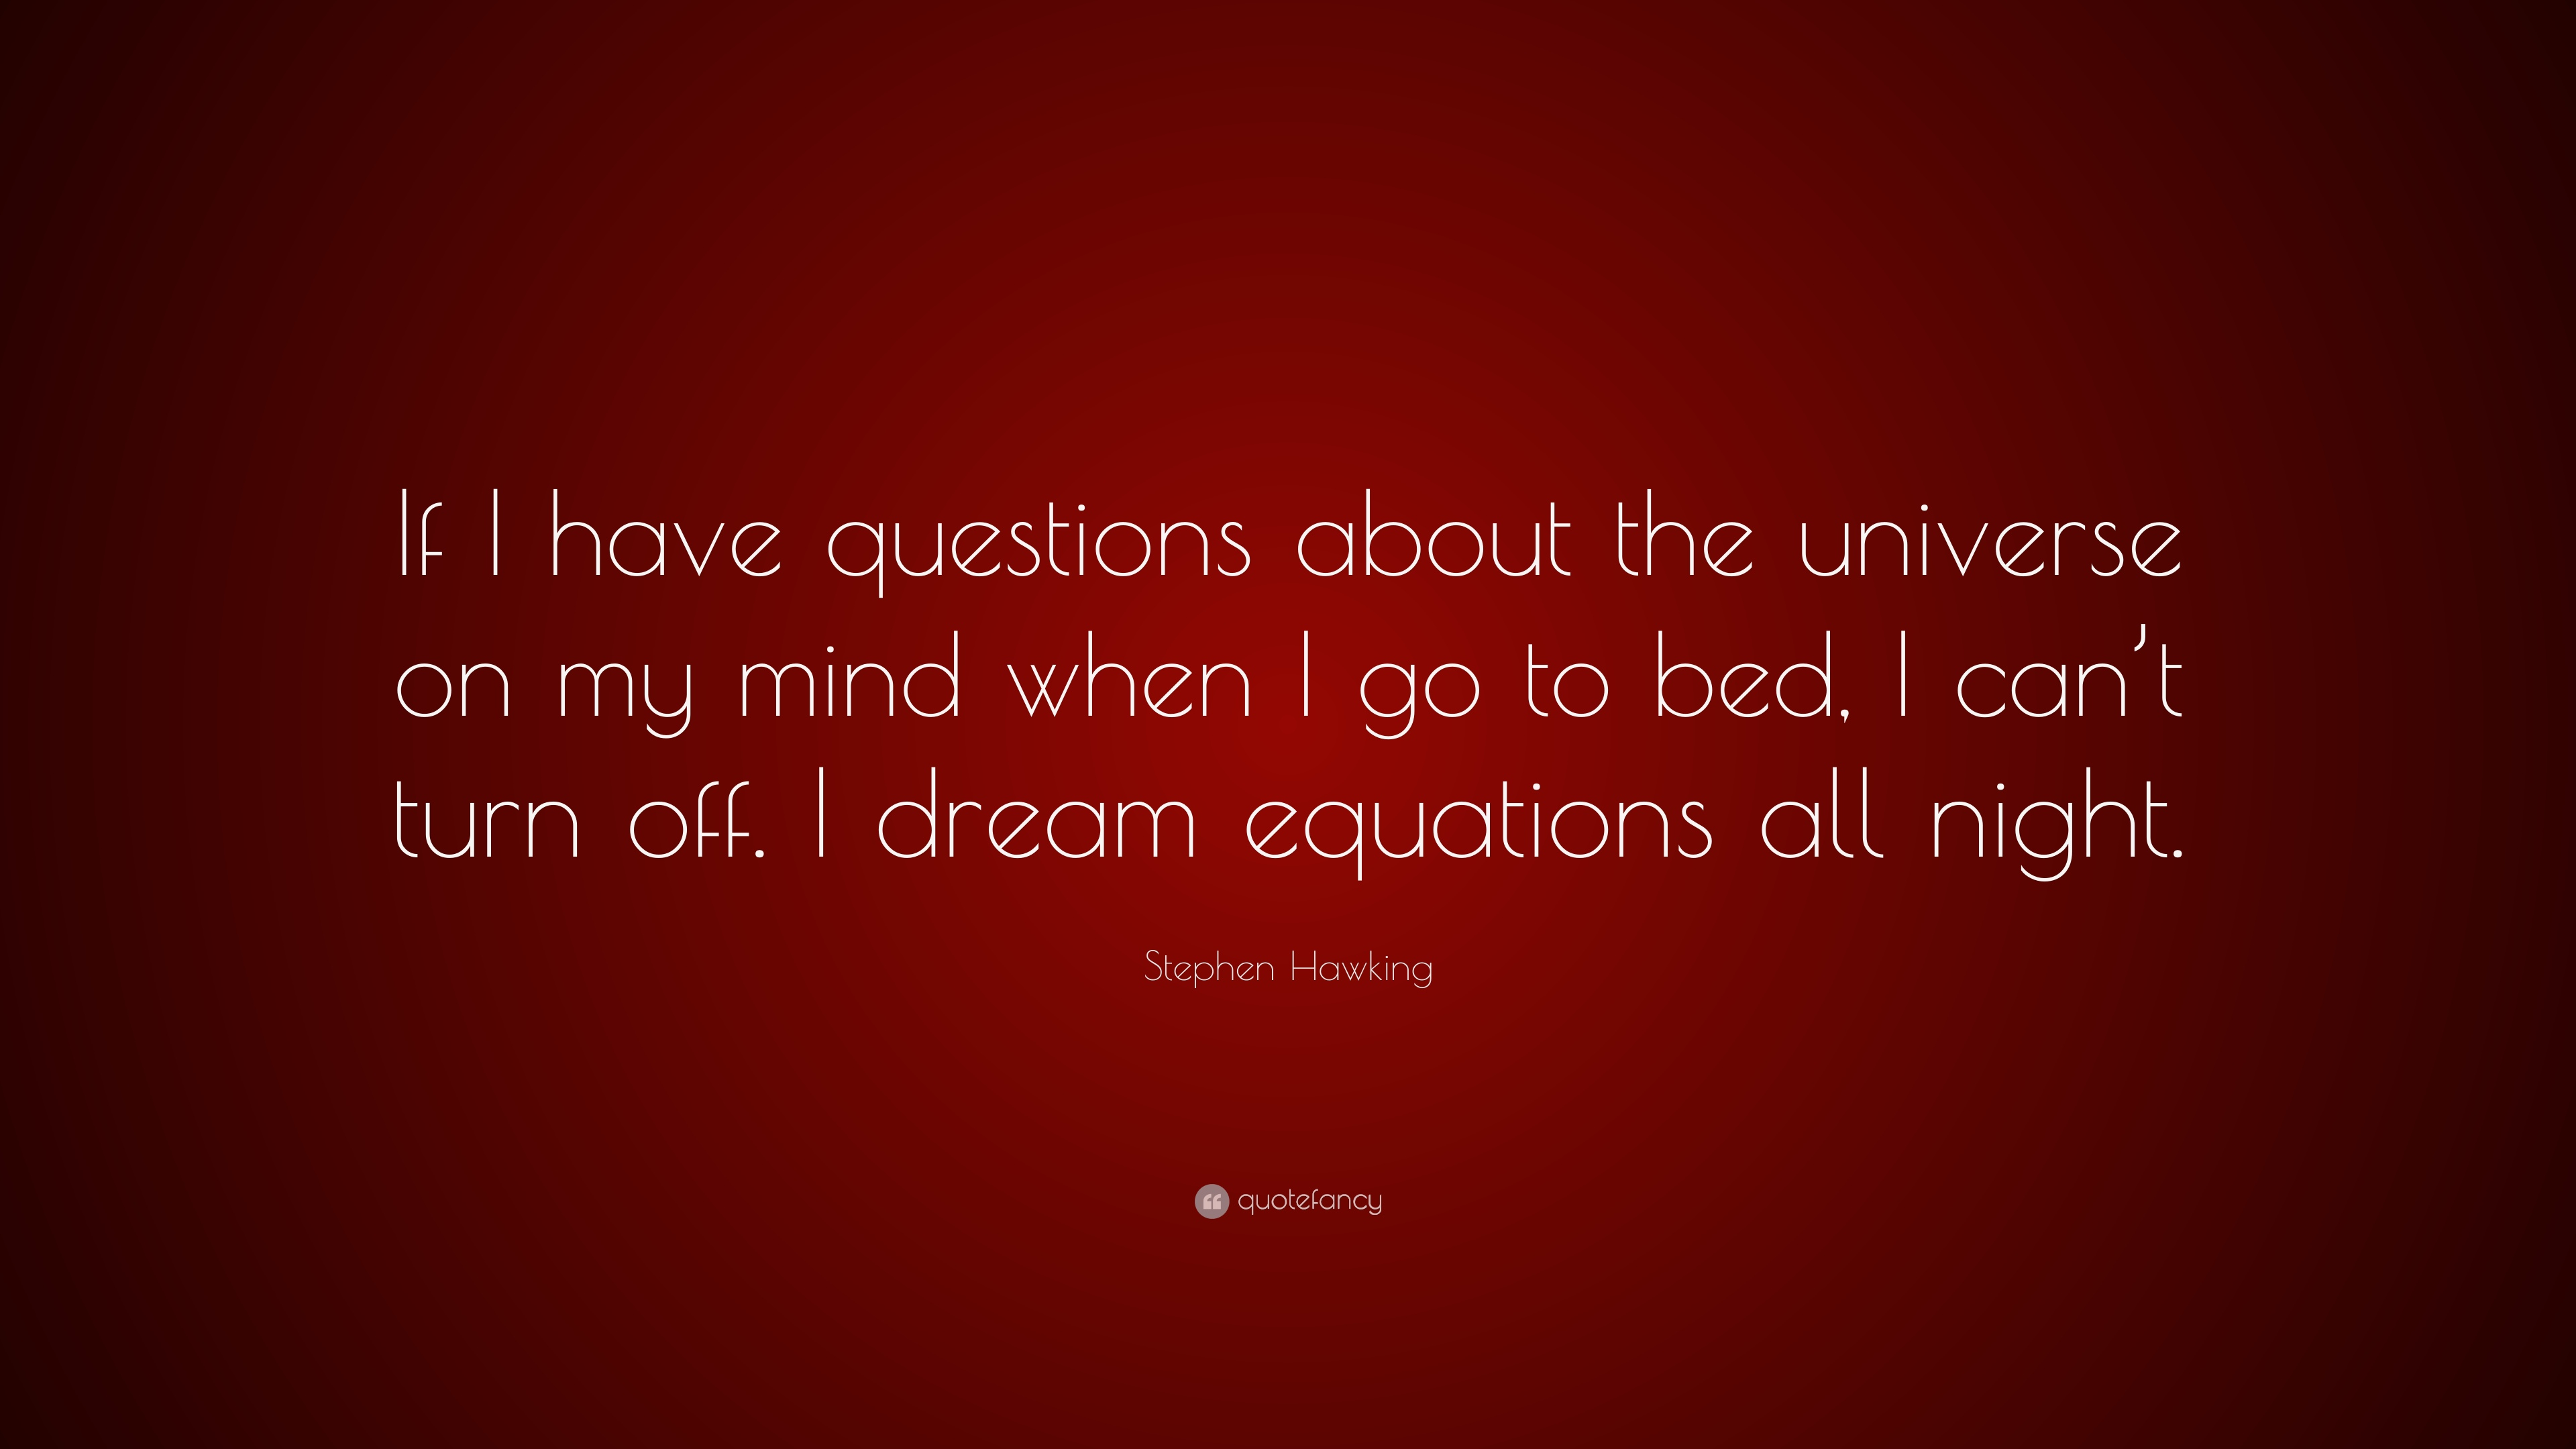 stephen hawking quote if i have questions about the universe on stephen hawking quote if i have questions about the universe on my mind when